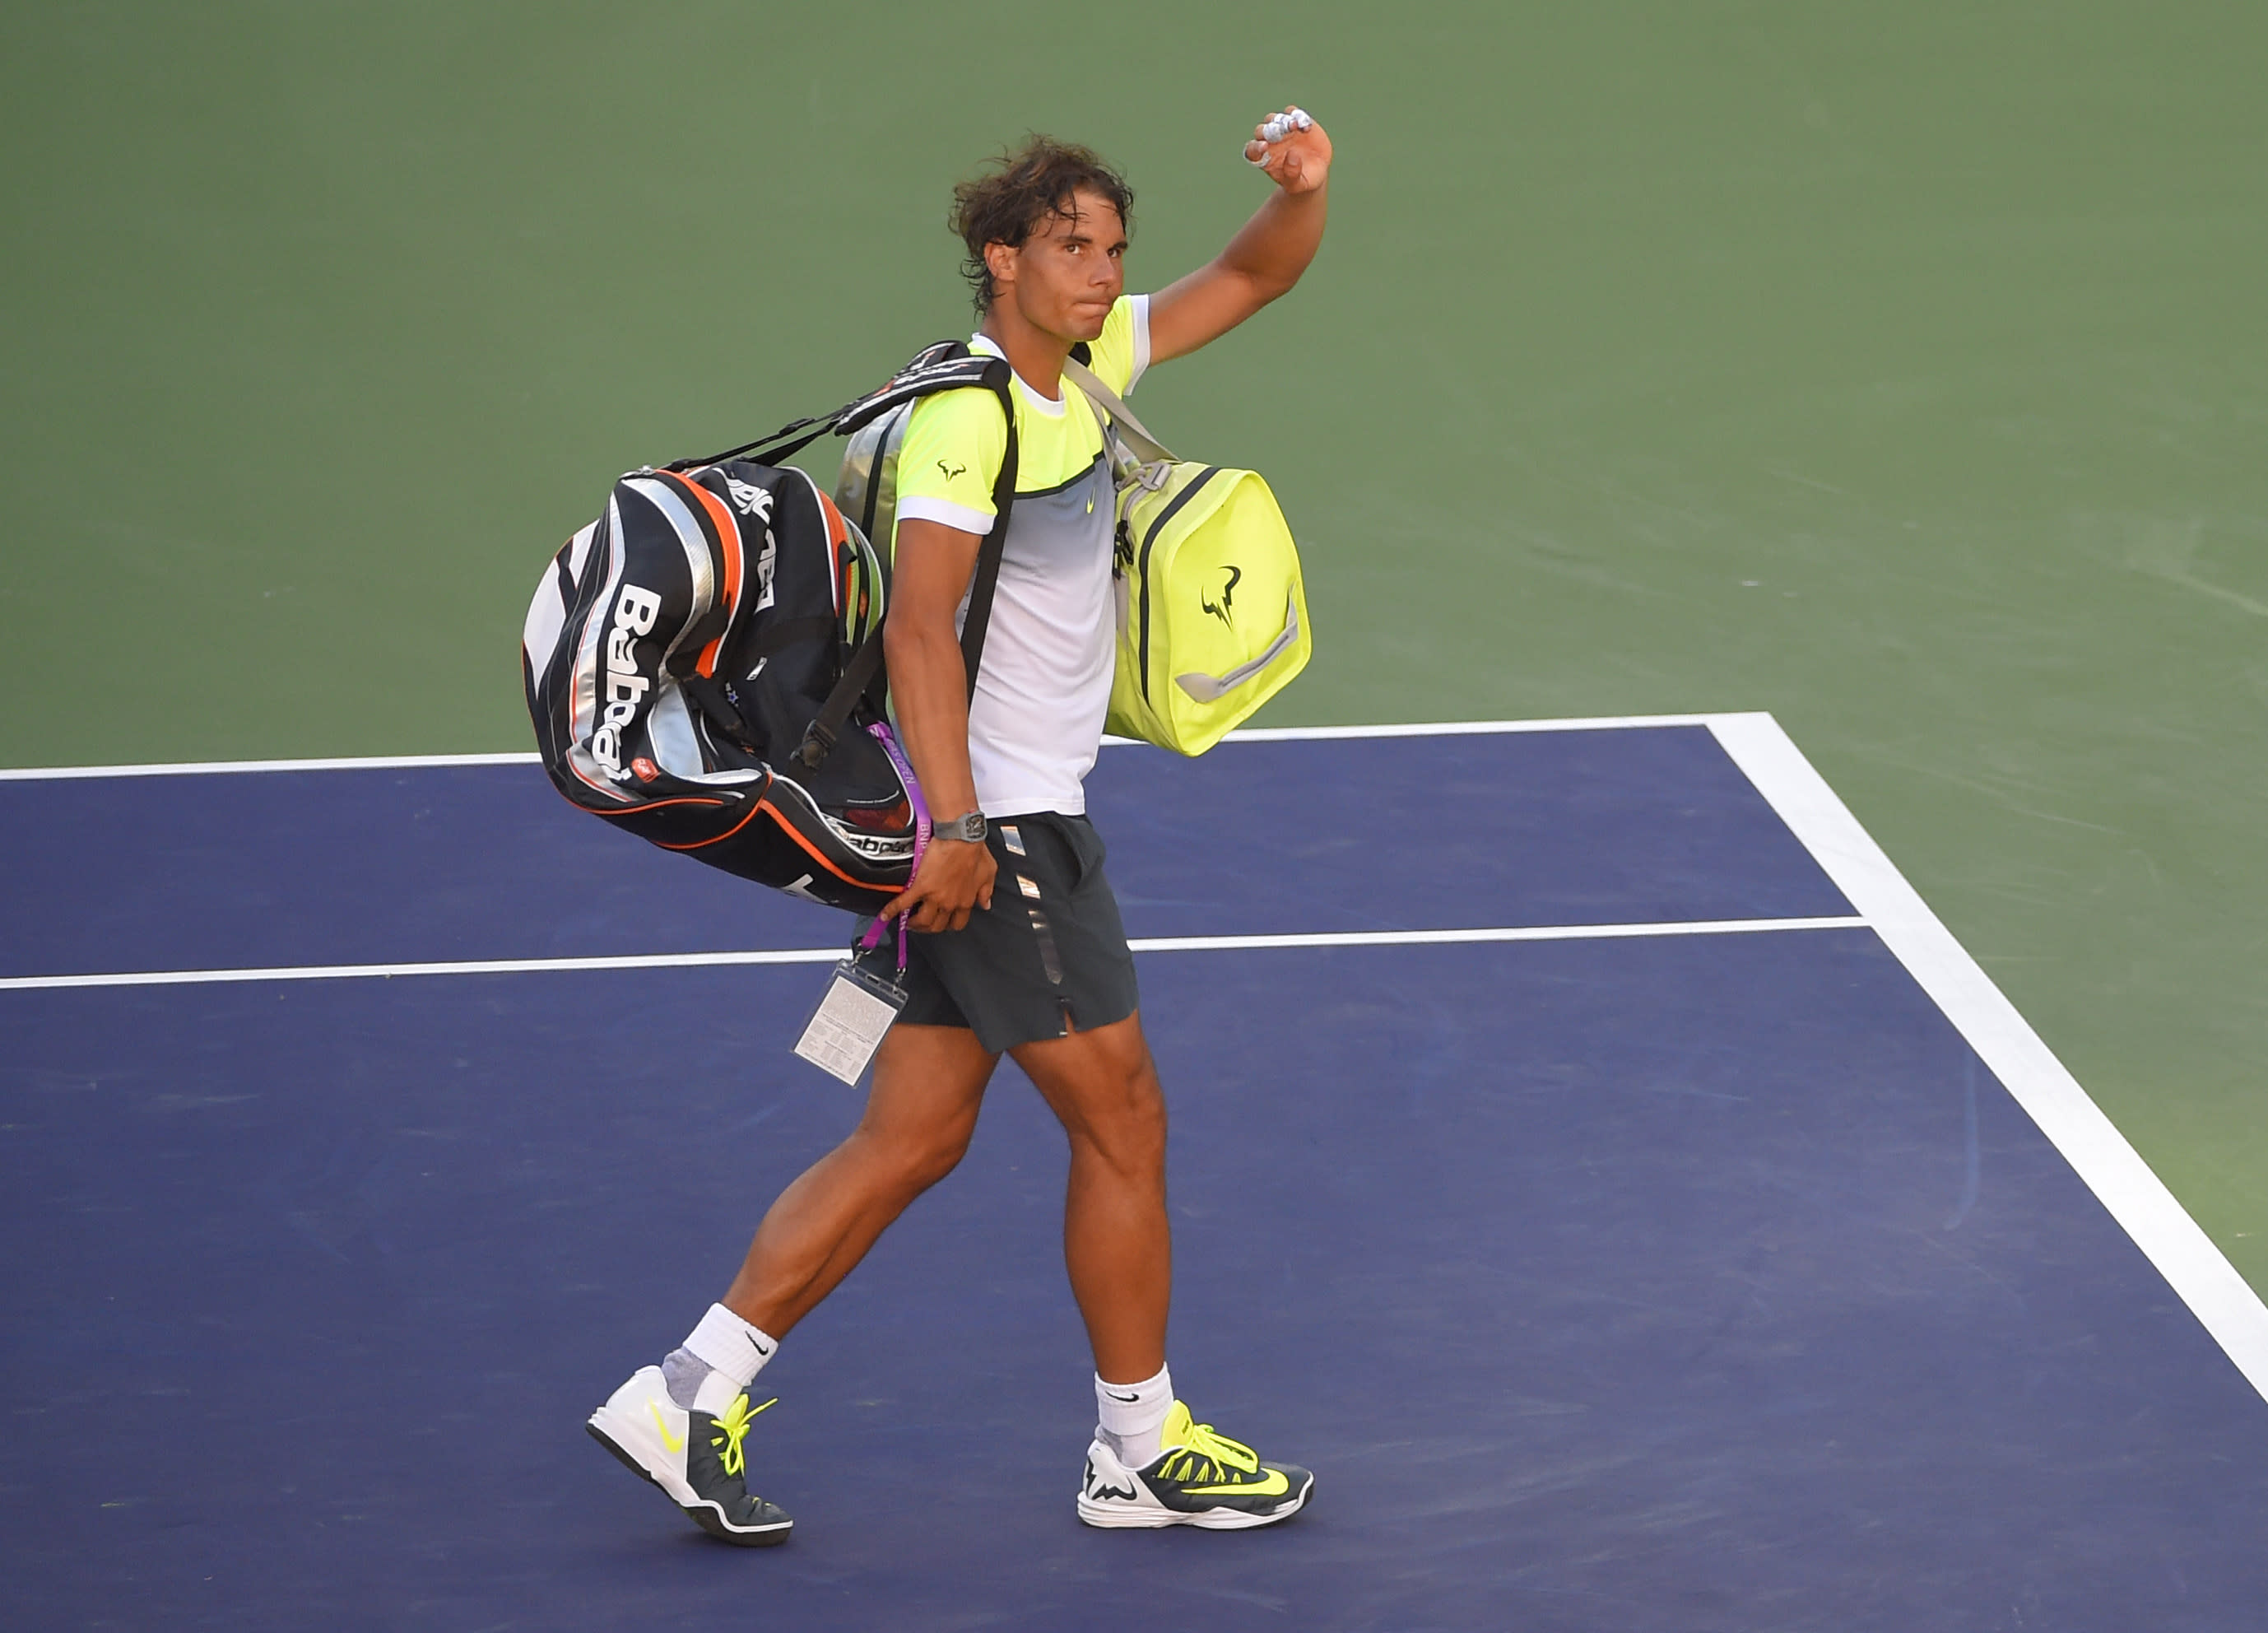 Nadal to play at Queen's Club ending three-year absence